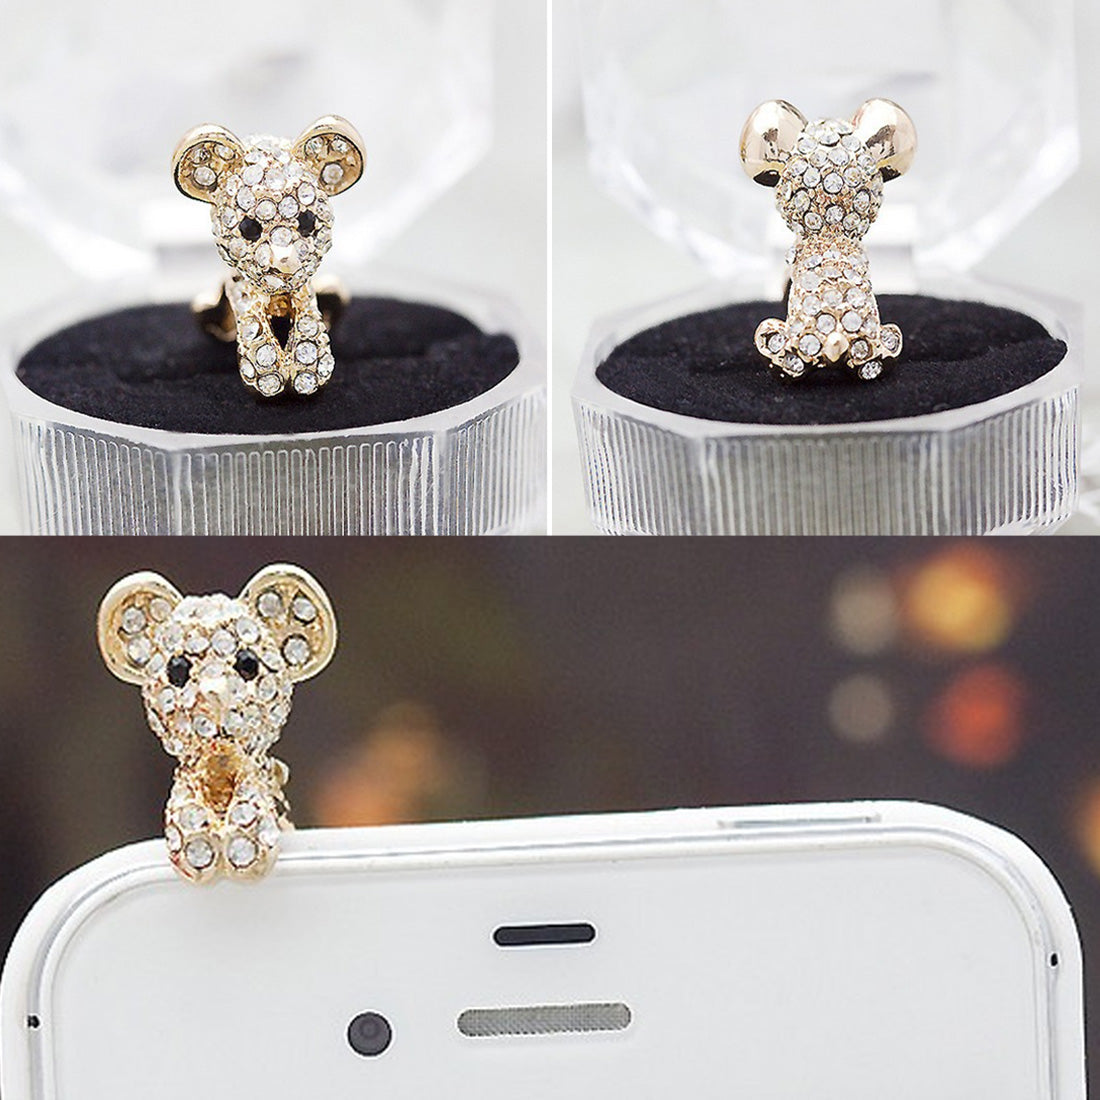 Costbuys  New Cute Dog Design Earphone Dust Plug Dustproof Plug Caps Cell Phone Accessories For all 3.5mm Earphone - White